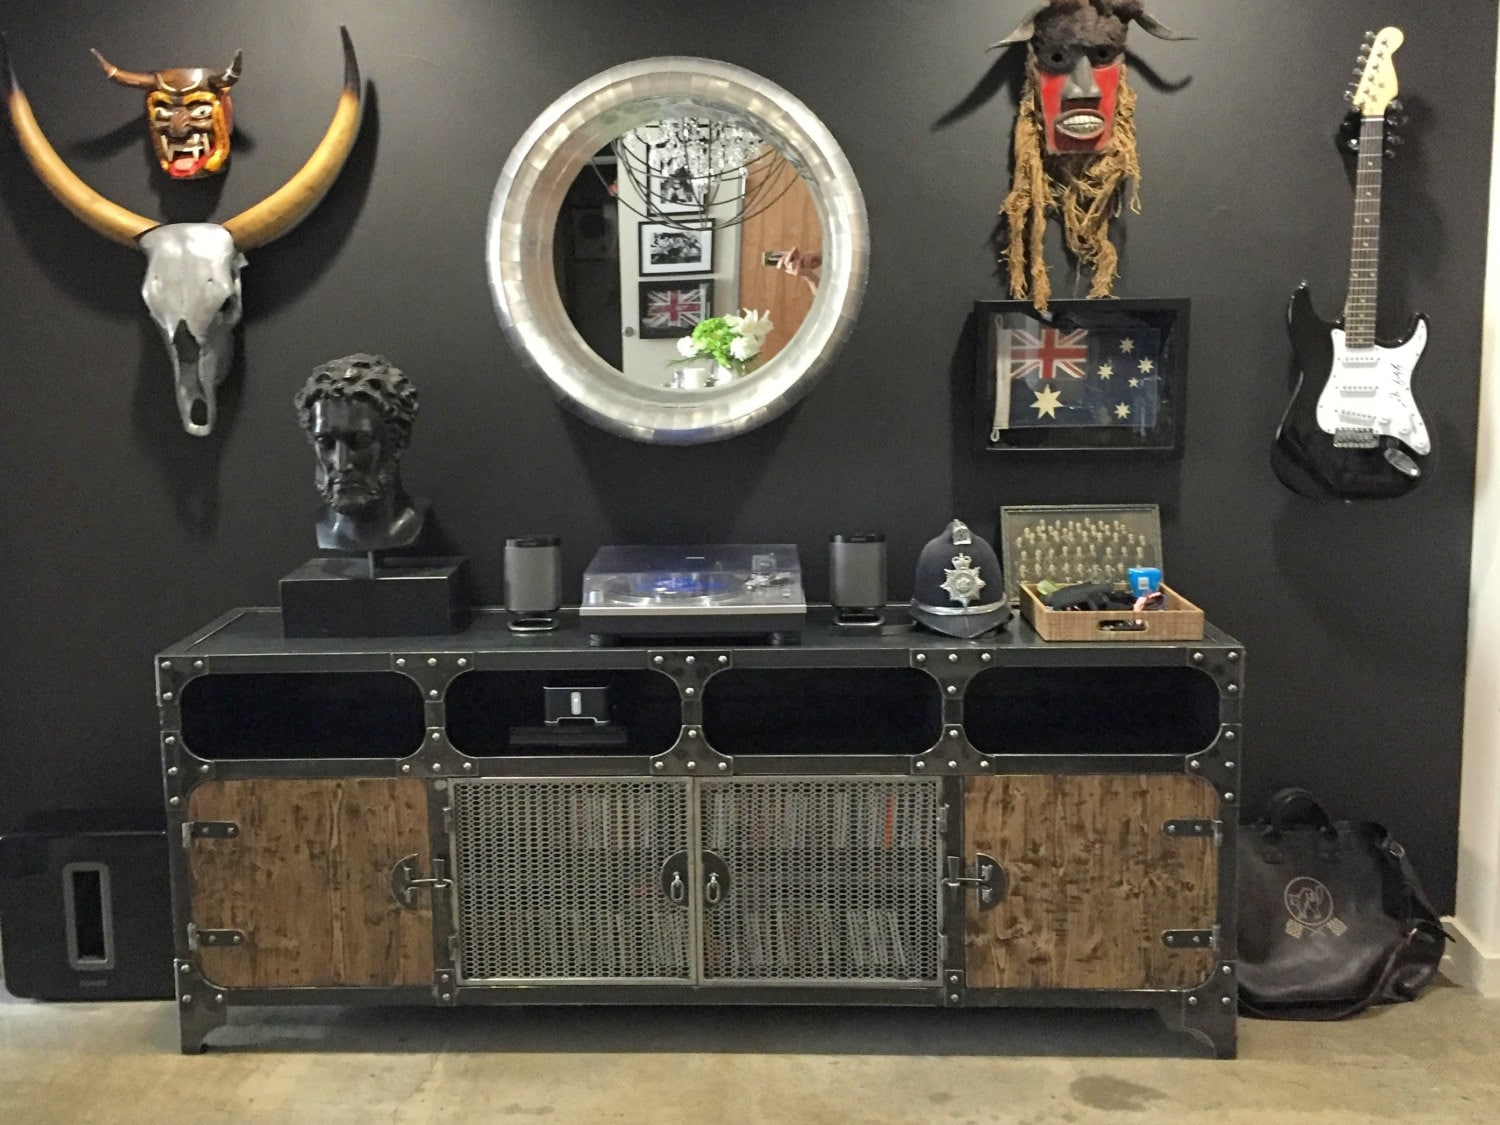 Metal And Wood Media Console | Vintage Industrial HiFi Record Player Retro  Furniture | TV Steel